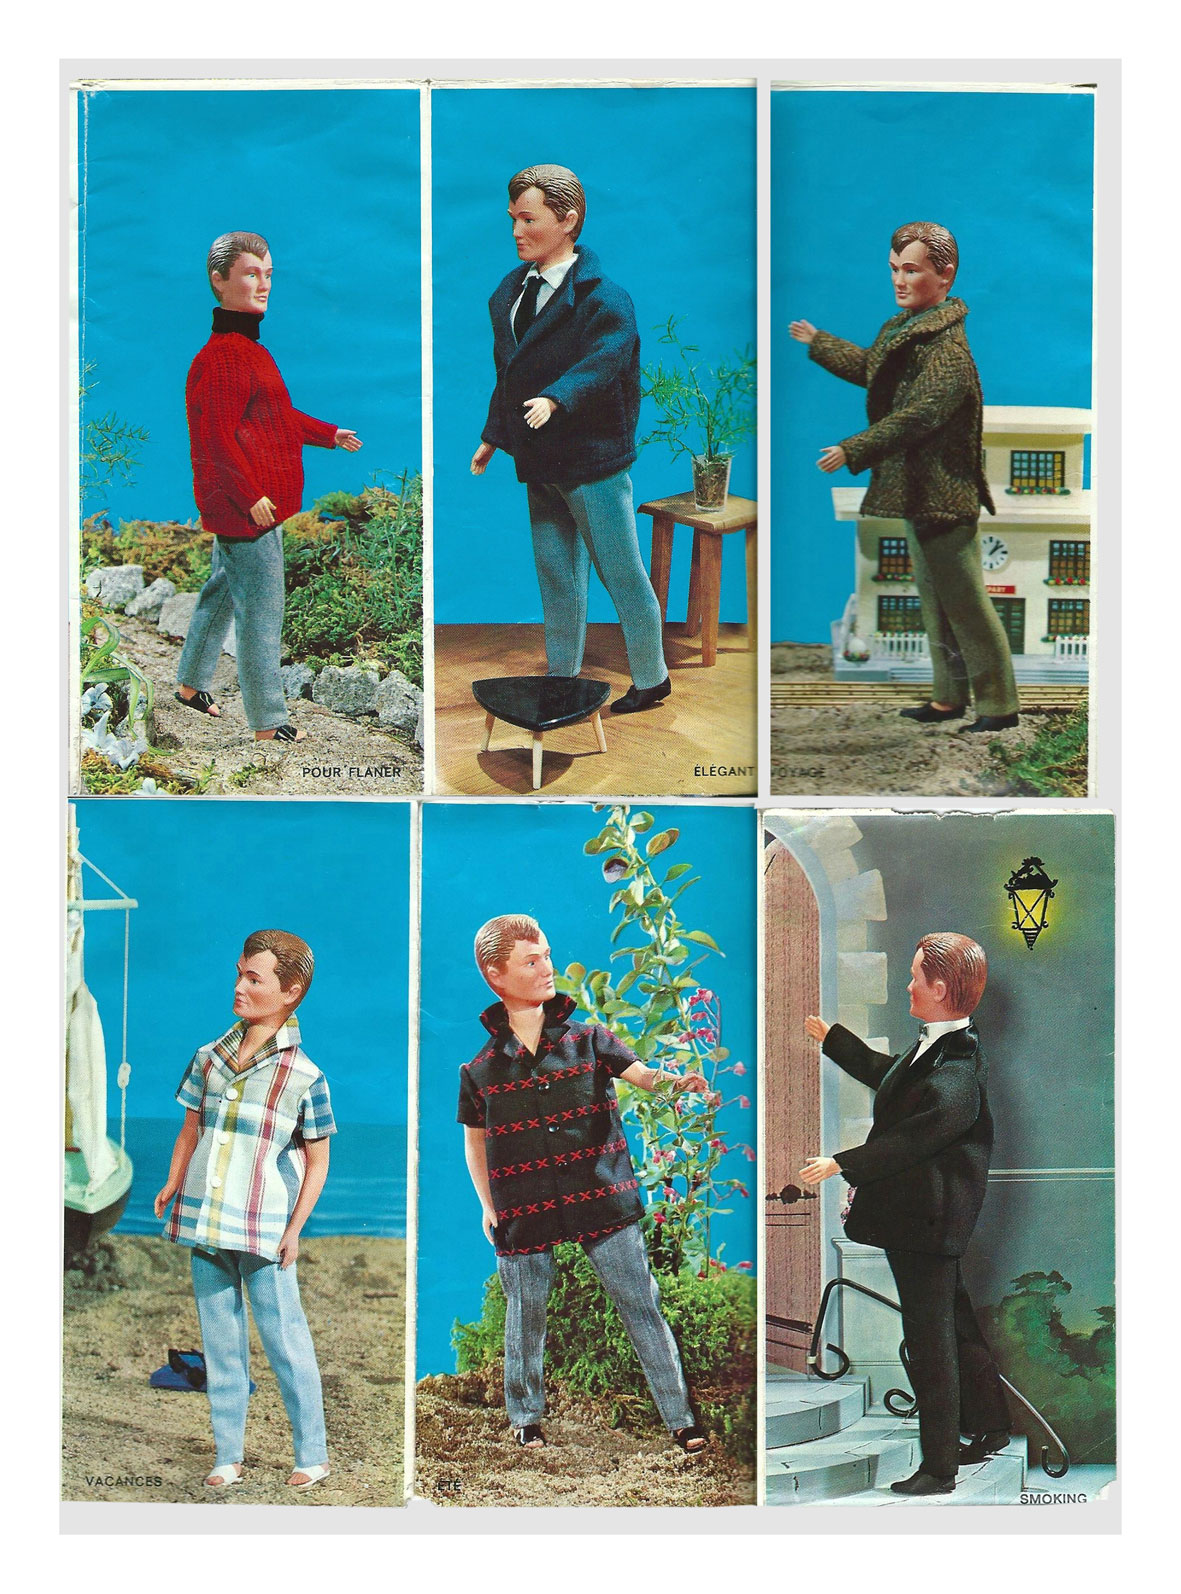 From 1966 French Mily & Jacky brochure by GéGé